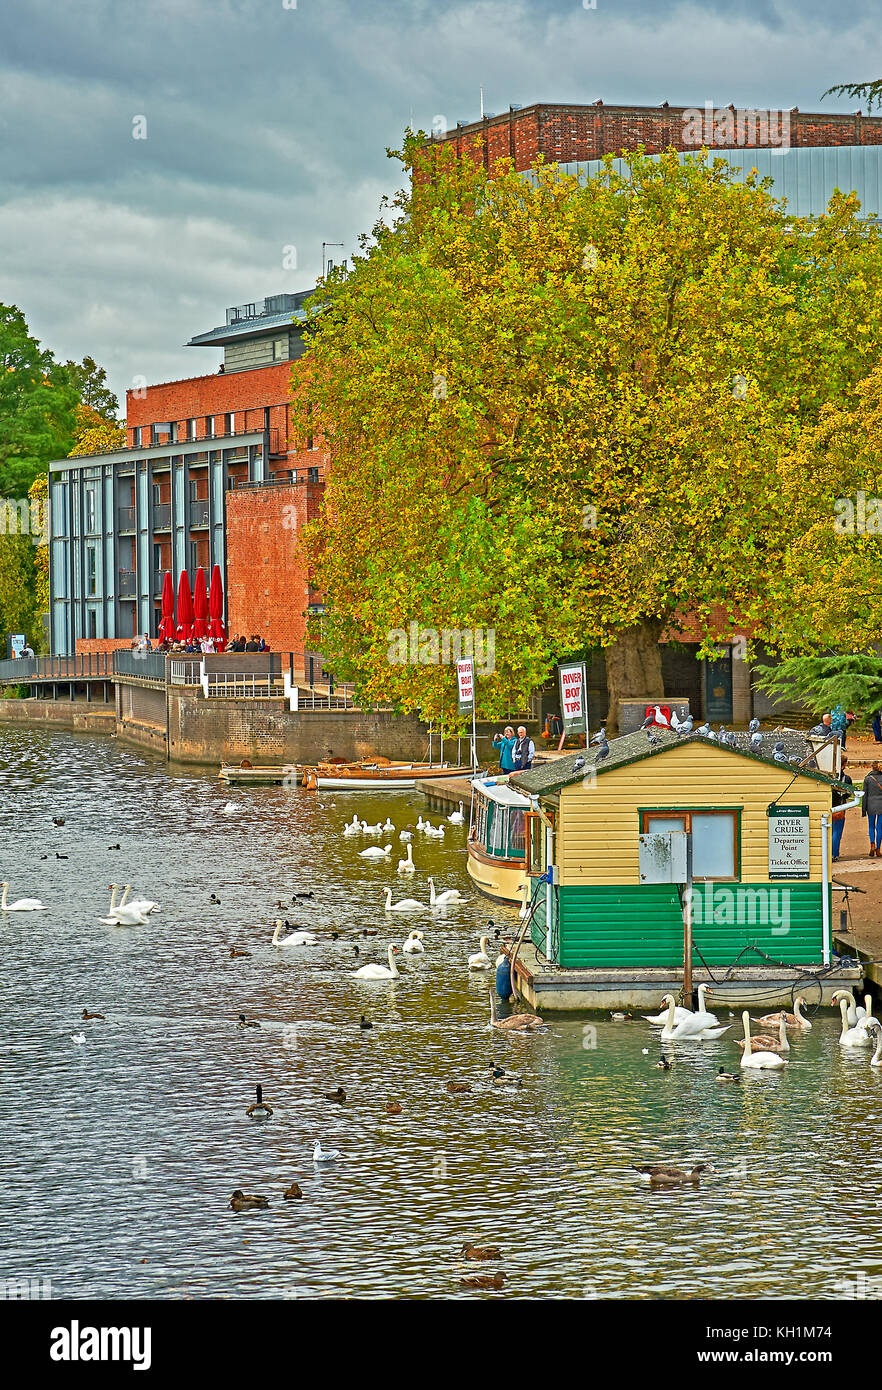 Mute swans and boats on the River Avon in Stratford upon Avon, outside the Royal Shakespeare Theatre, on an Autumn - Stock Image